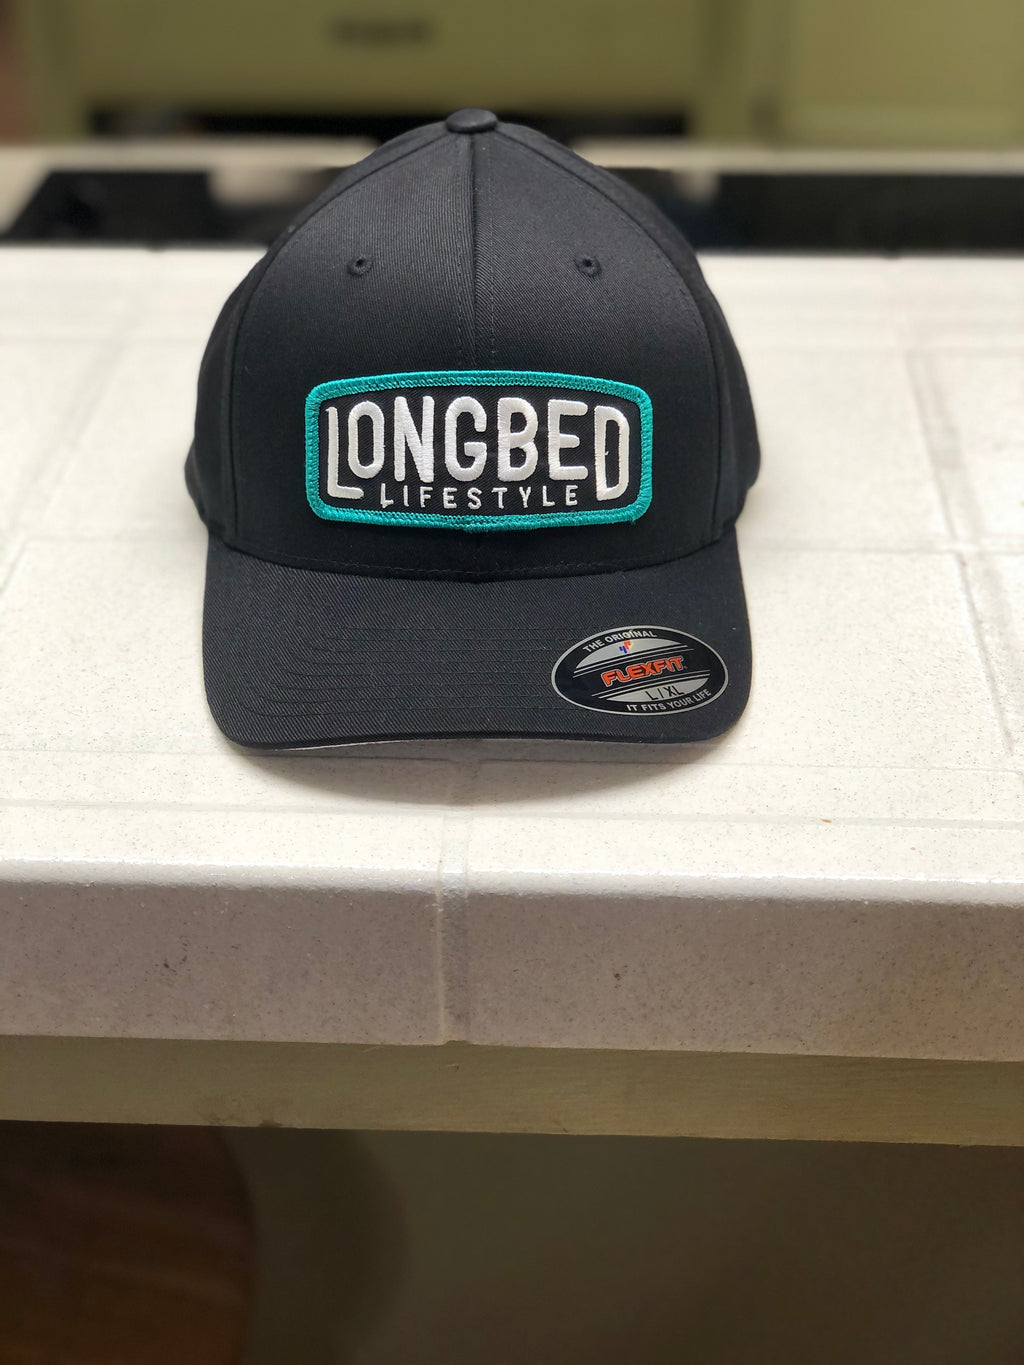 Longbed Lifestyle Hat